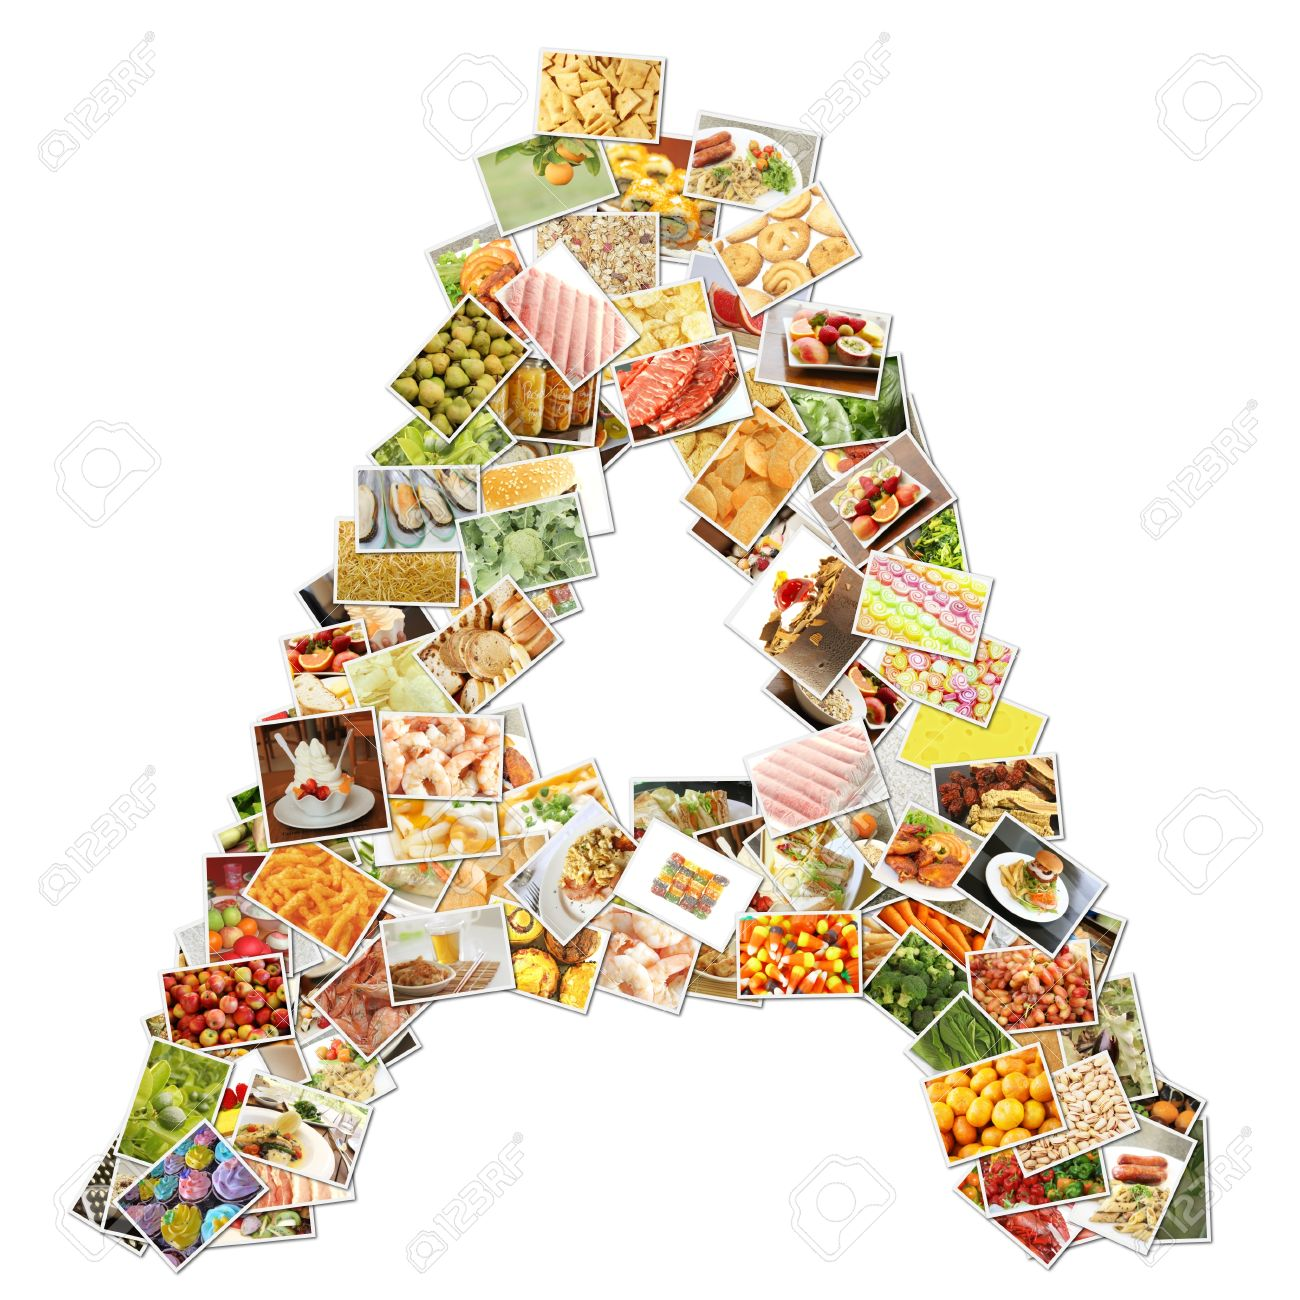 letter a food collage concept art stock photo picture and letter a food collage concept art stock photo 9691847